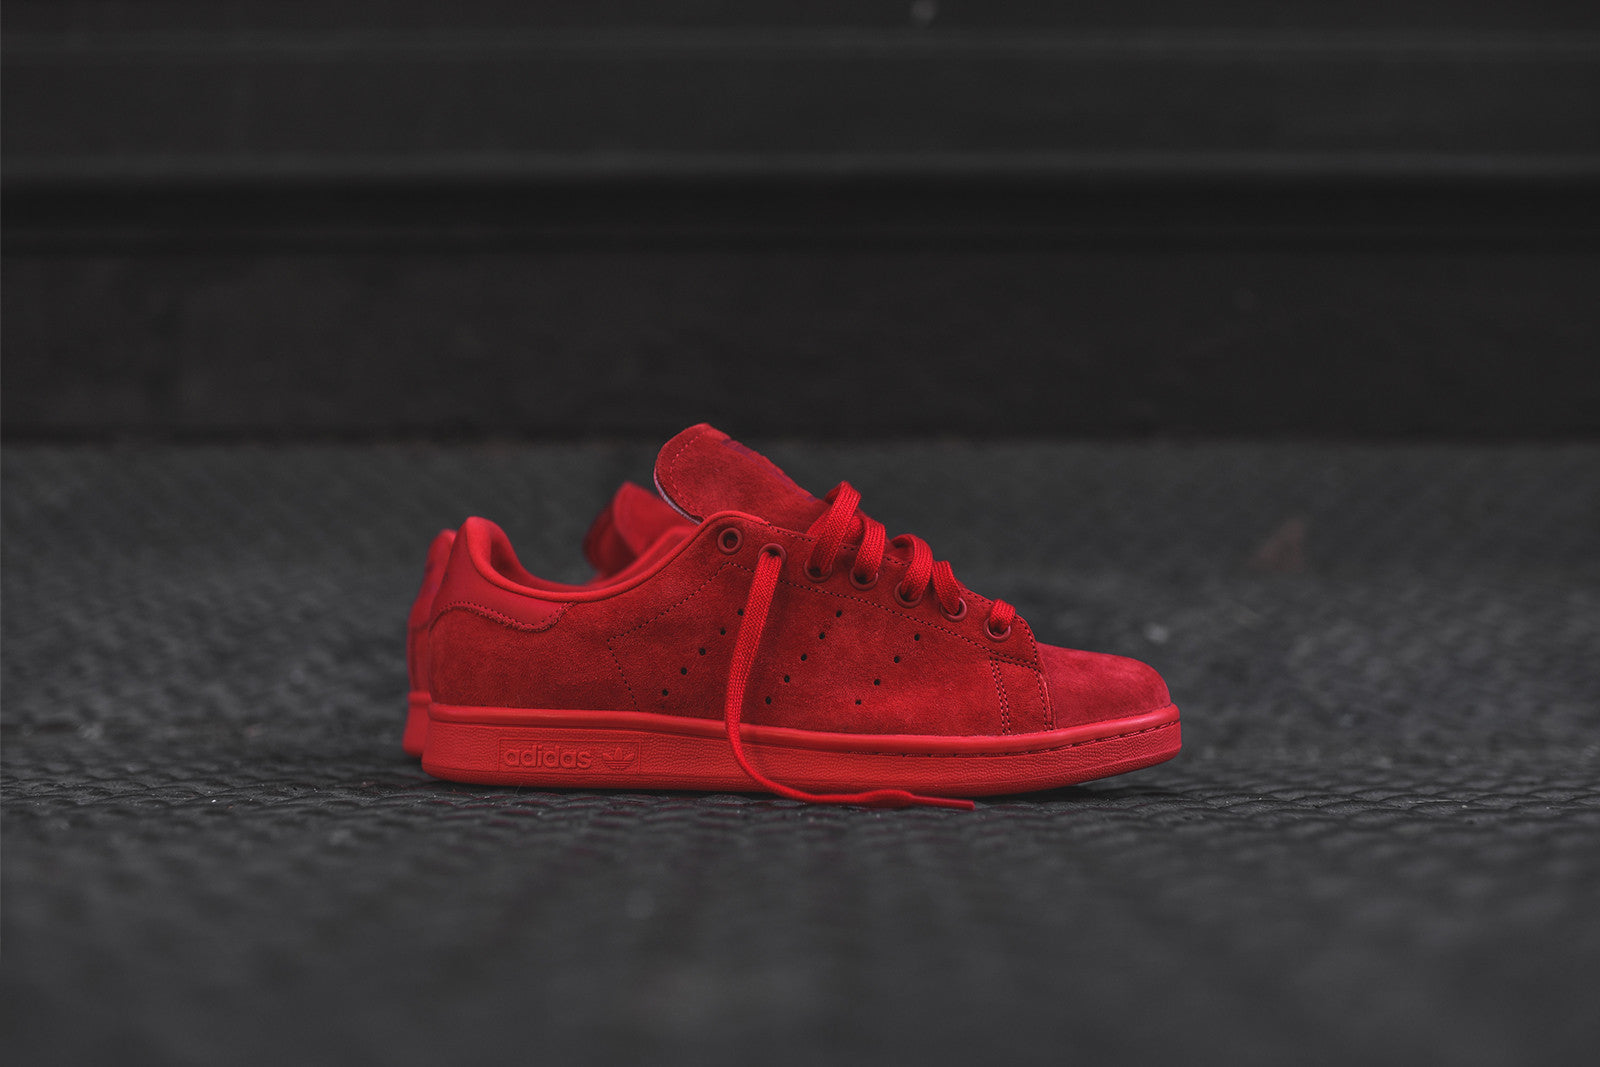 designer fashion c5911 d46e5 StanSmith Red 1.jpg v 1456507298